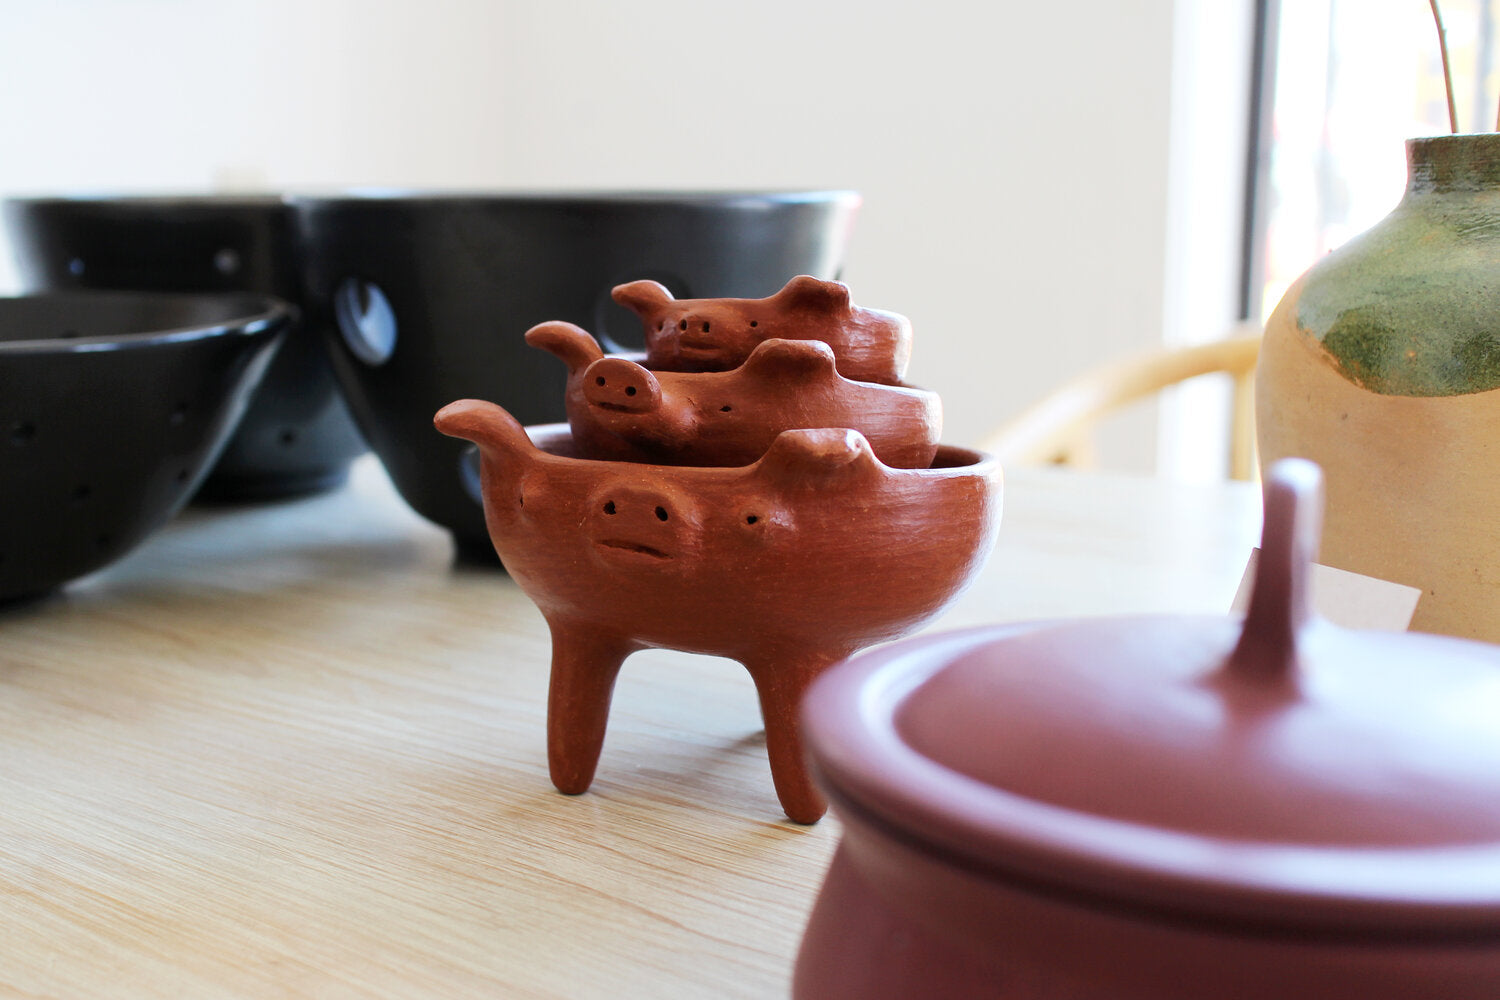 Little Pig bowl made from red clay by hand in Oaxaca Mexico